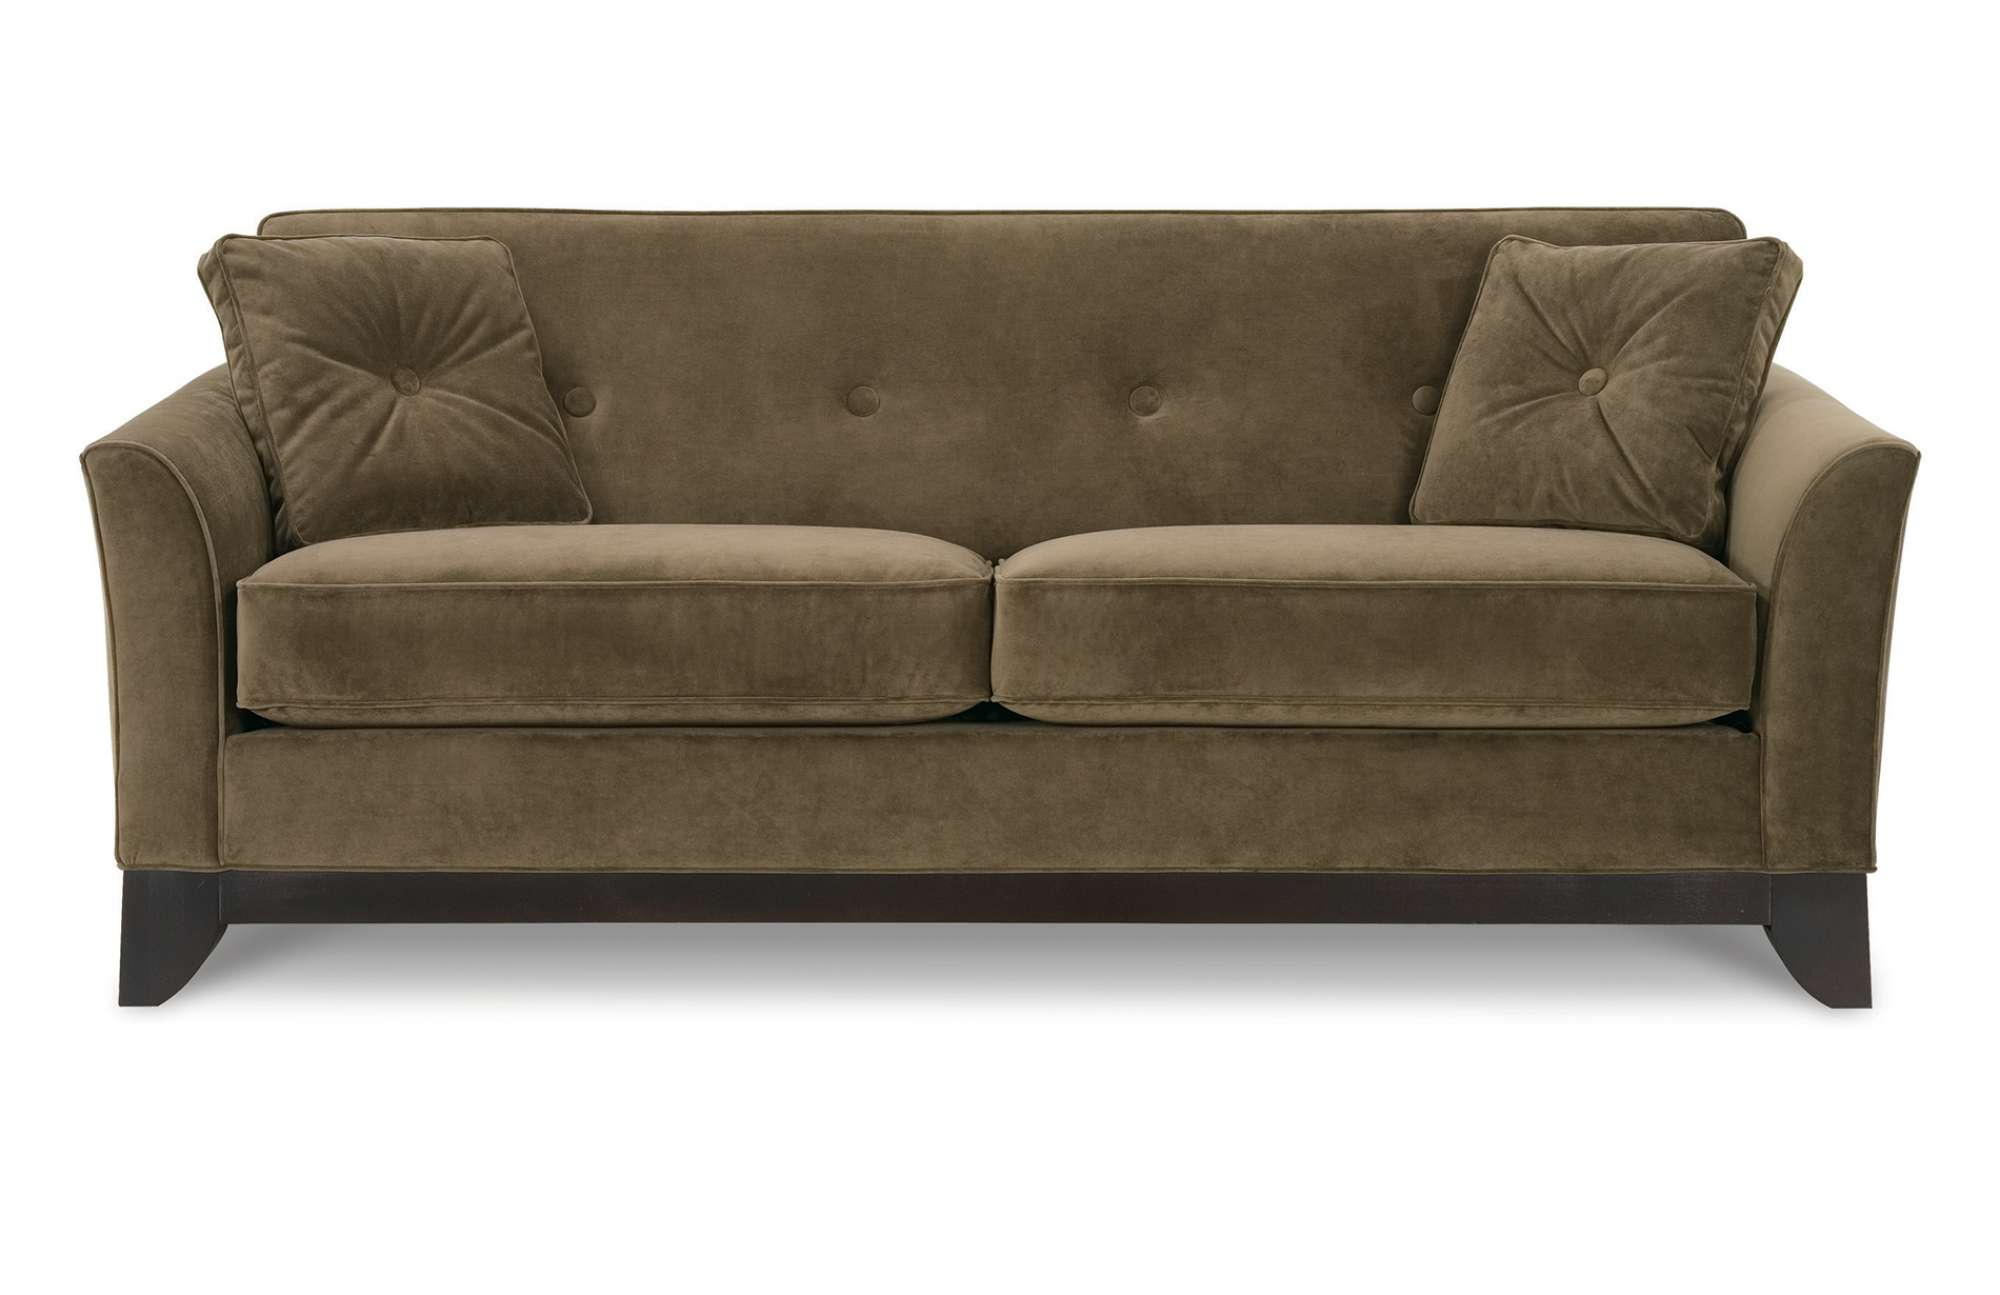 Sofa Furniture Interior Design